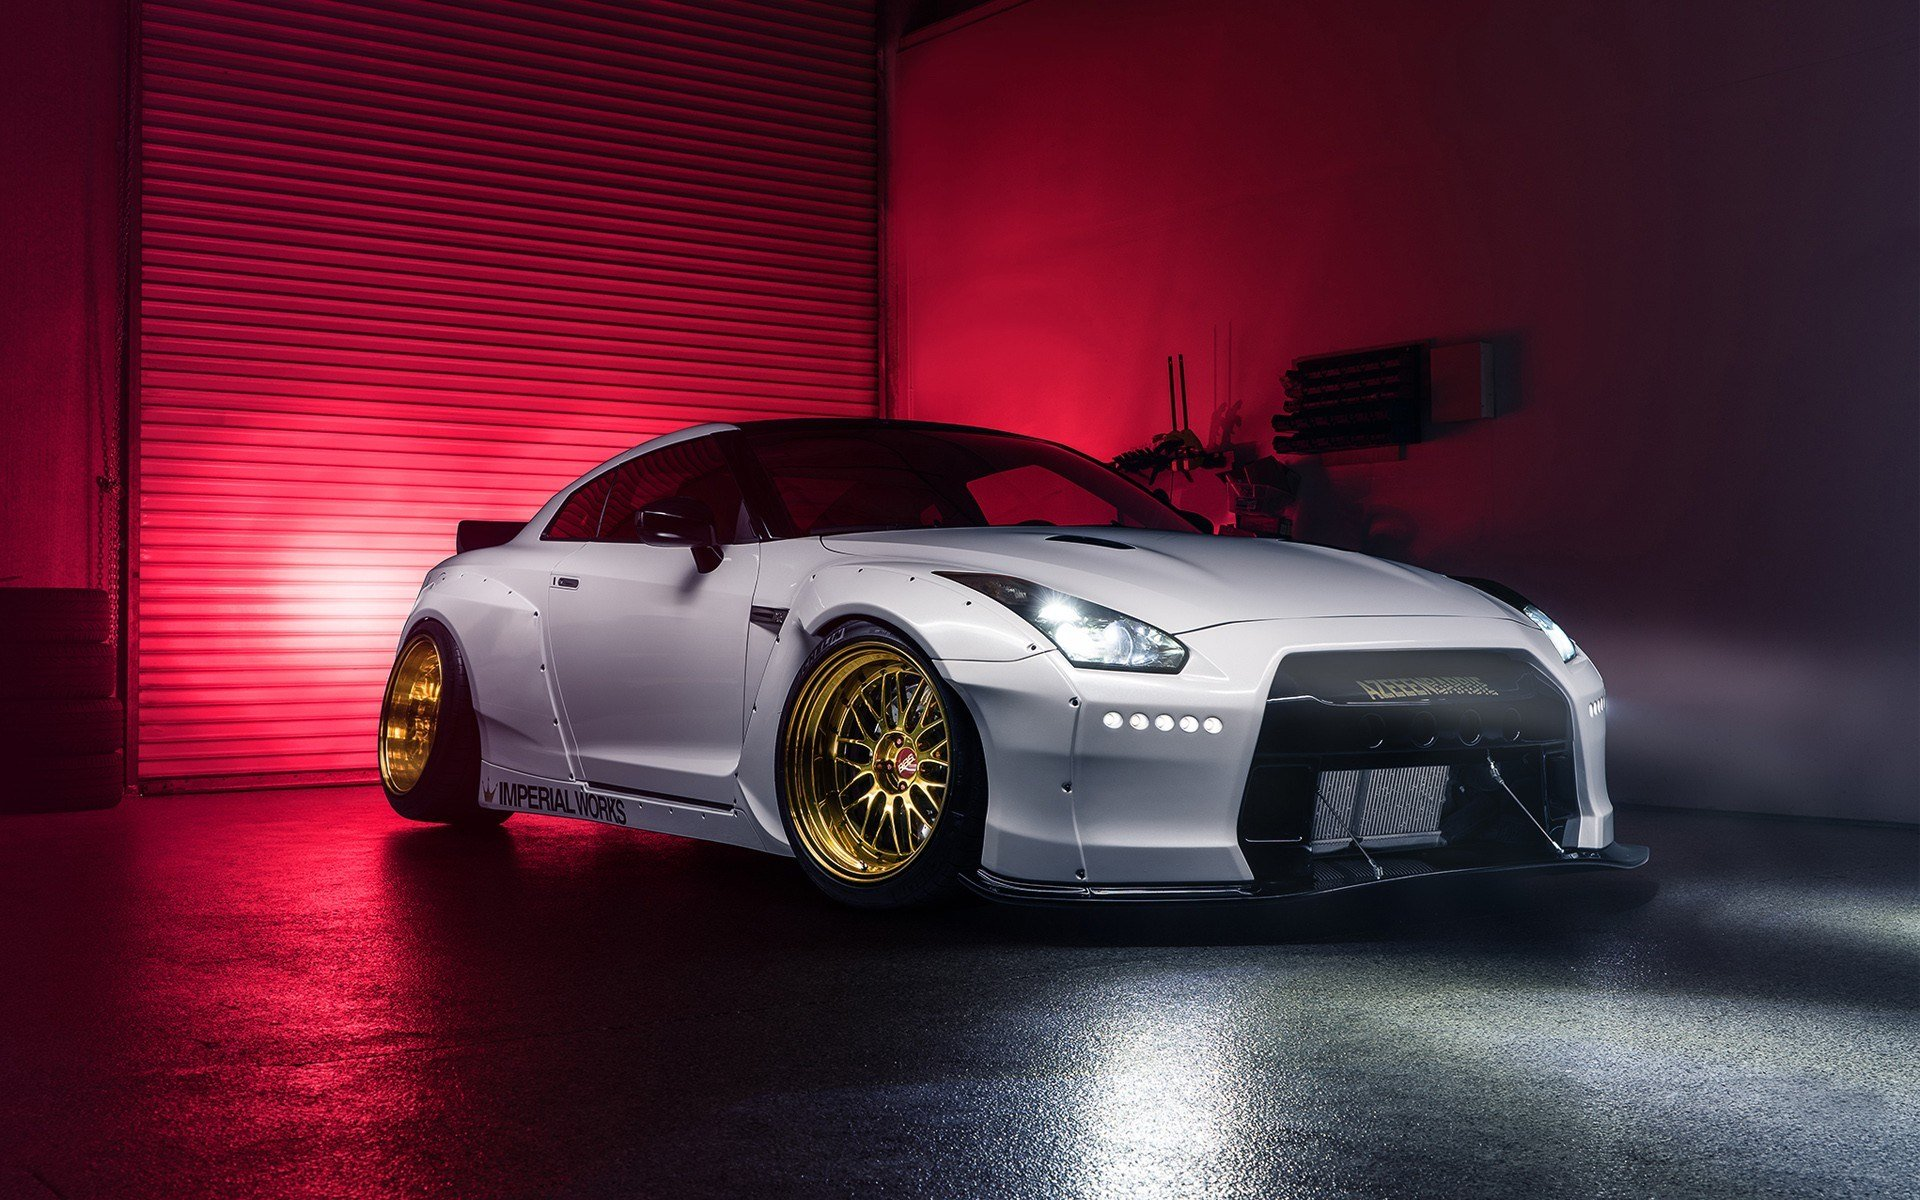 Latest Nissan Gtr Imperial Works Wallpaper Hd Car Wallpapers Free Download